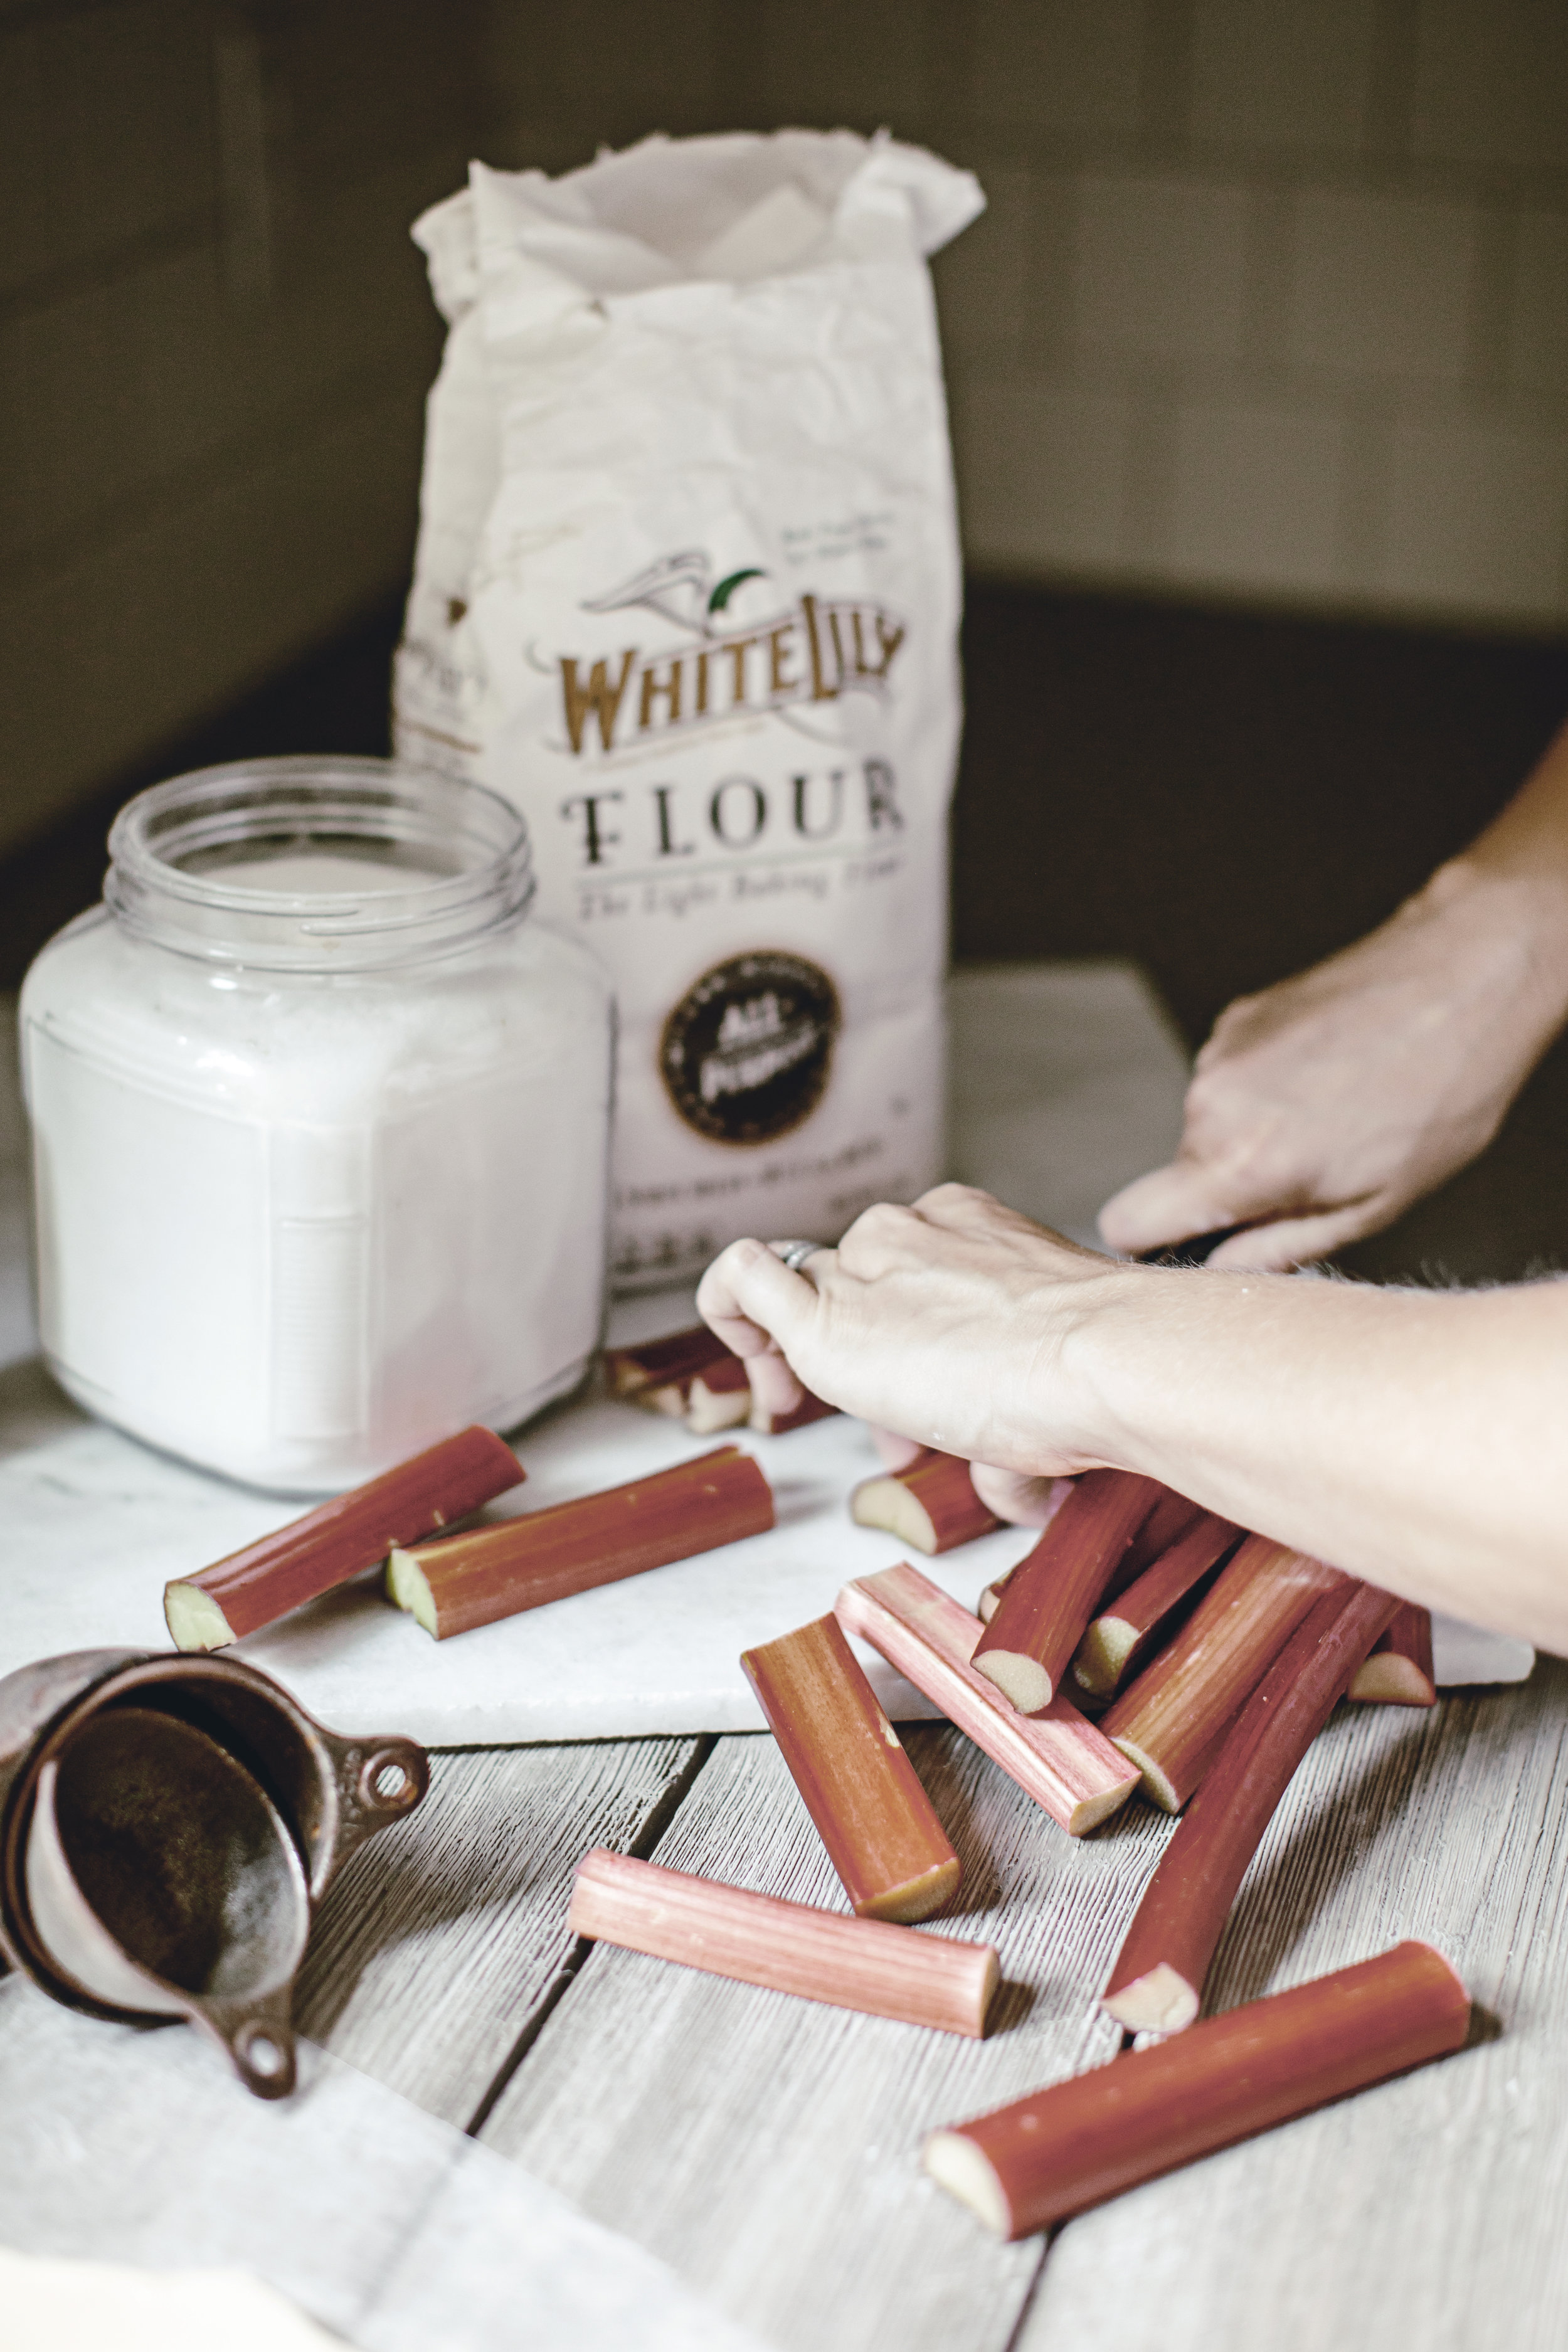 white lily flour and rhubarb is a southern match made in heaven / heirloomed